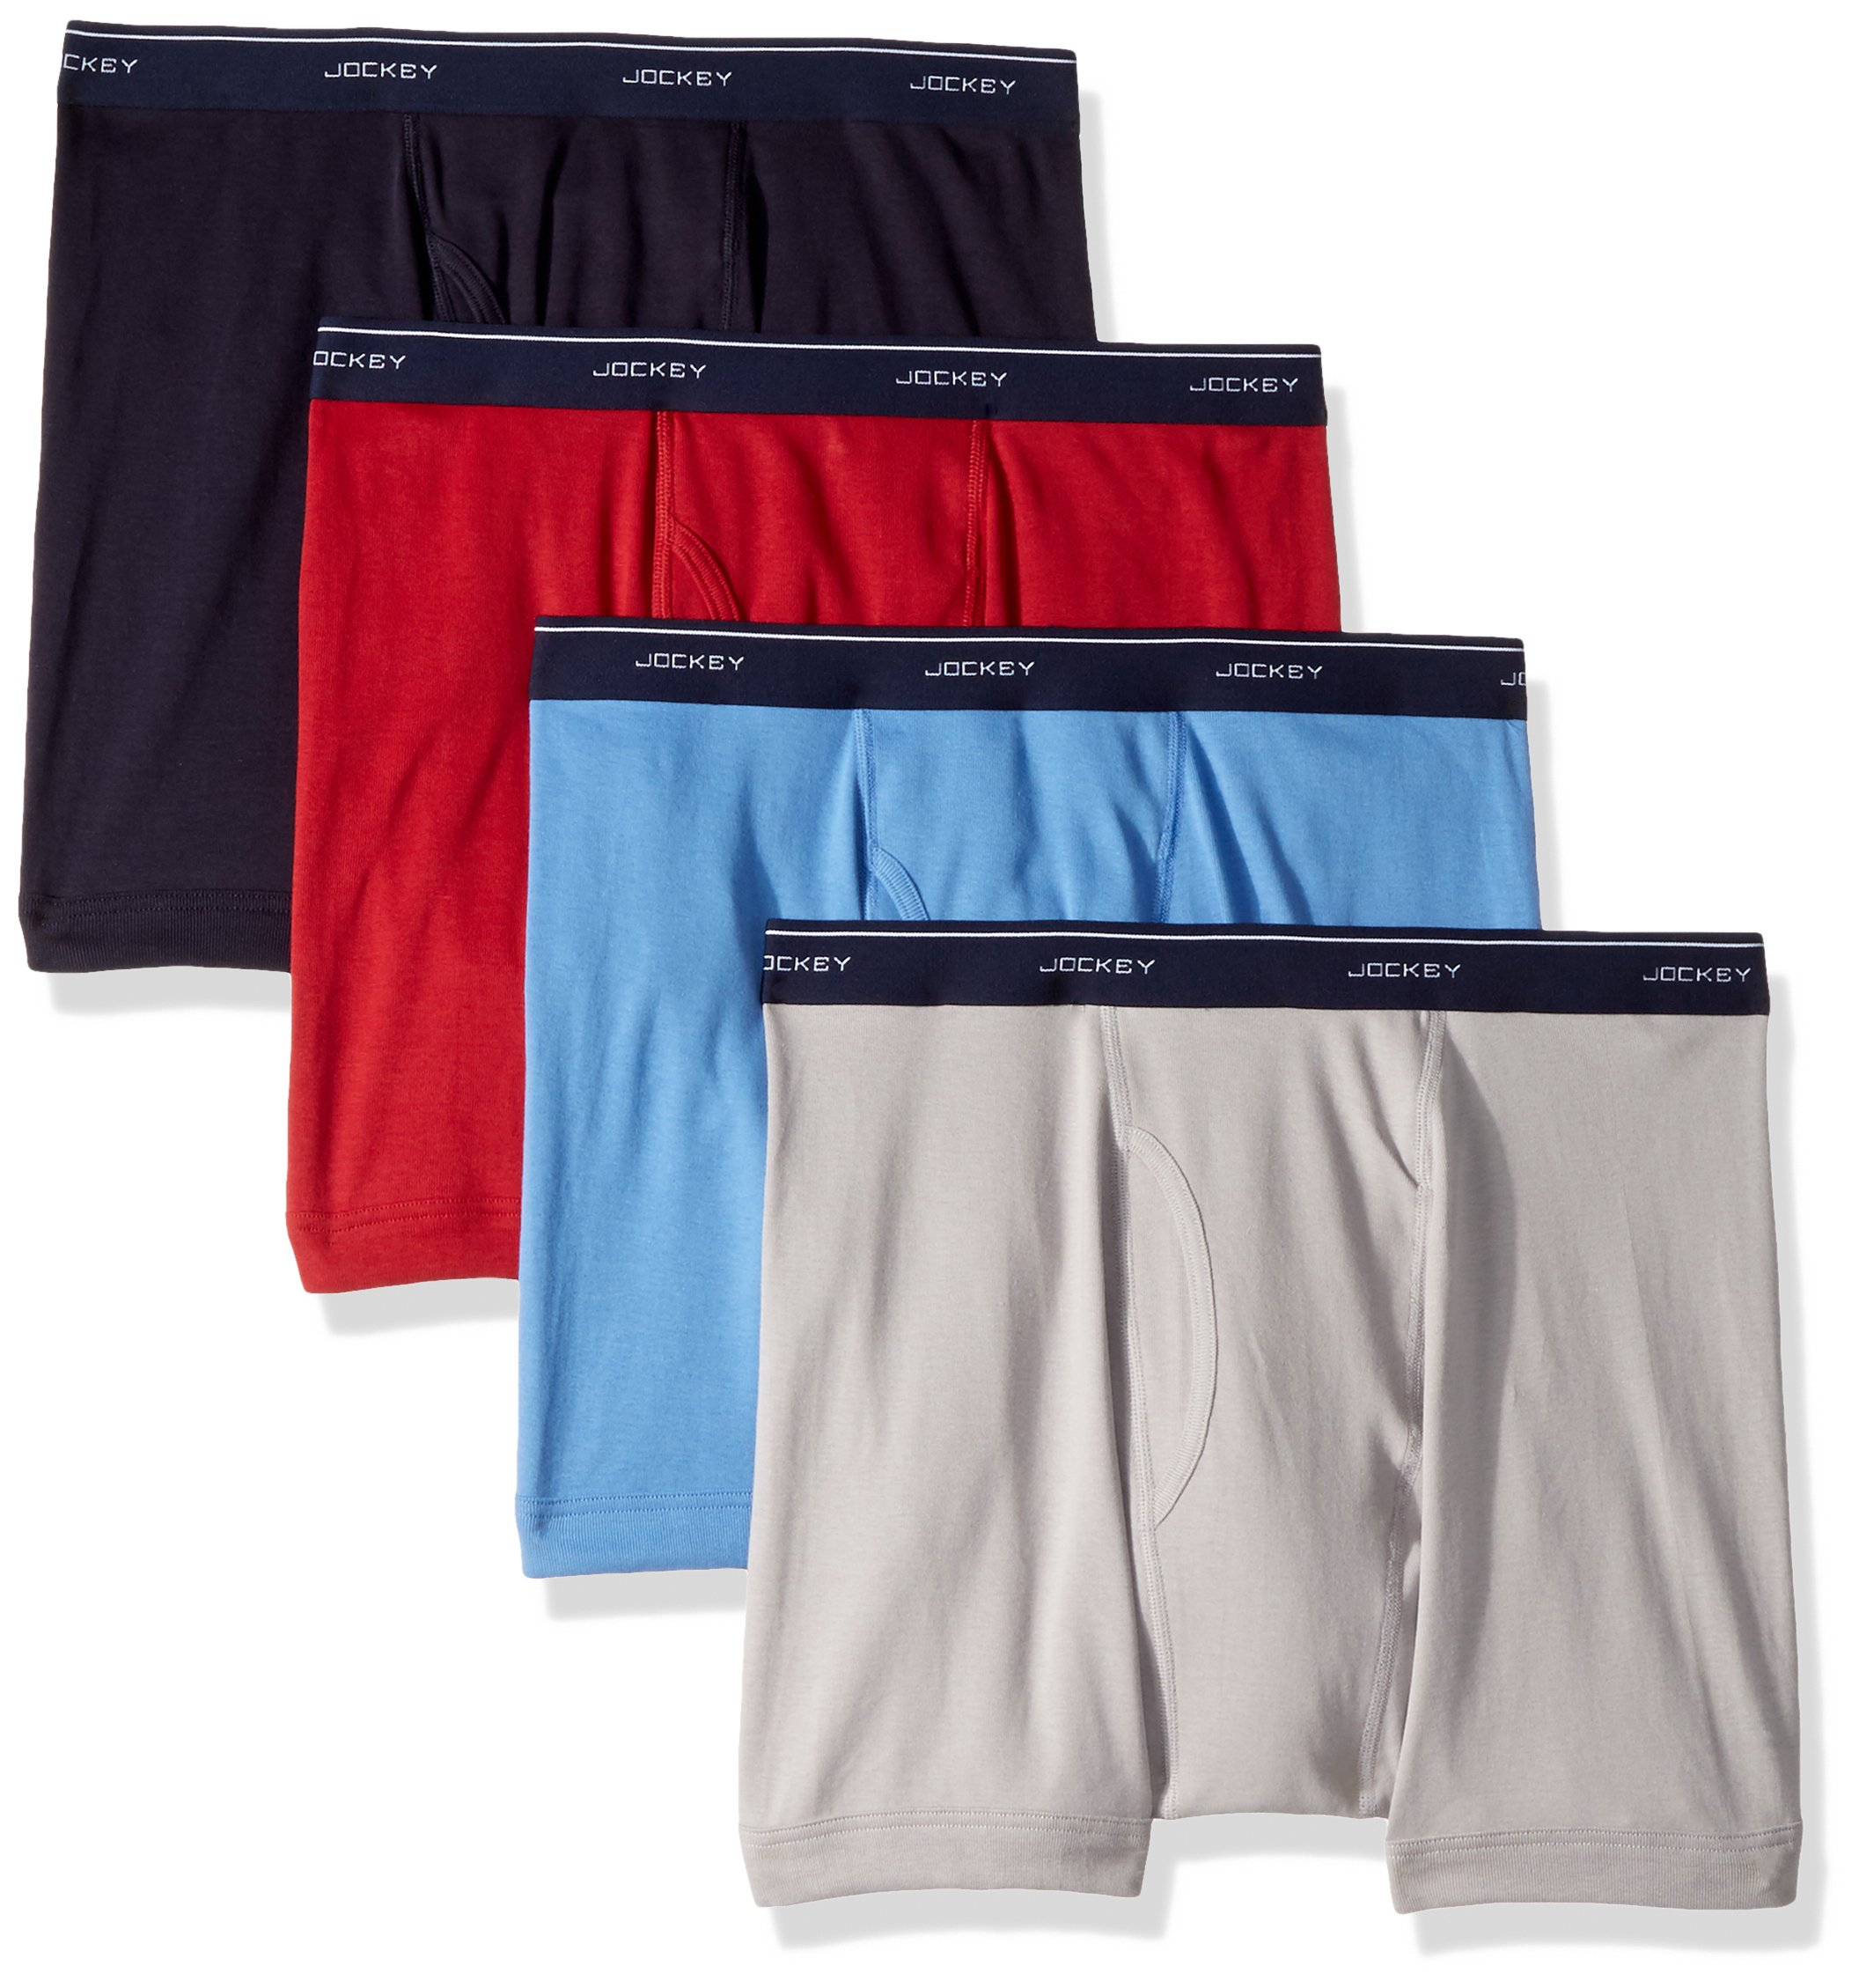 Jockey Men's Cotton Full-Rise Boxer Brief 4-Pack Helios Silver/Silver/Cosmic Blue/Red Virtual Large